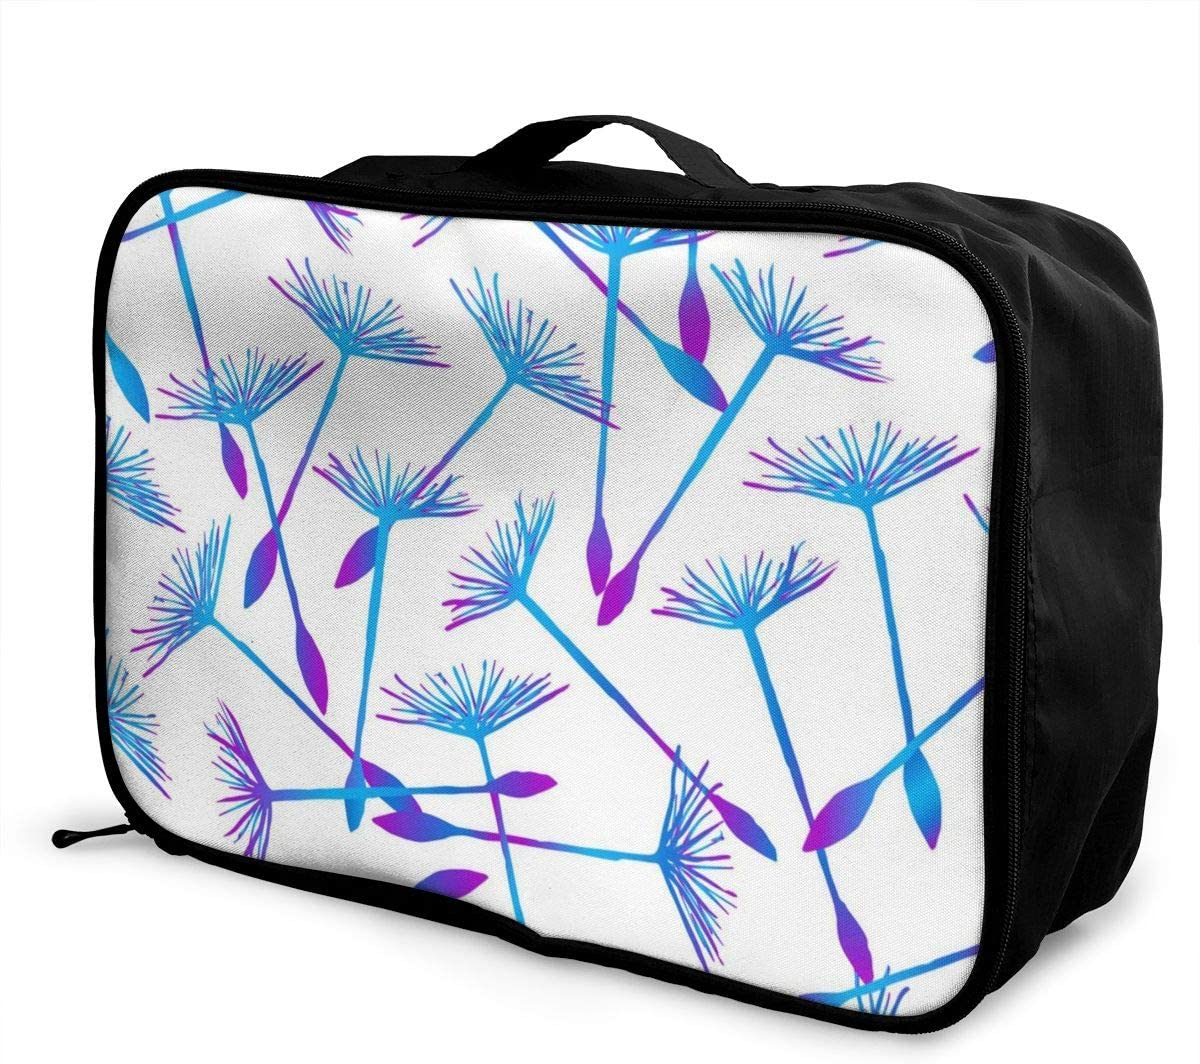 Yunshm Seamless Pattern With Colorful Flying Dandelion Vector Image Customized Trolley Handbag Waterproof Unisex Large Capacity For Business Travel Storage